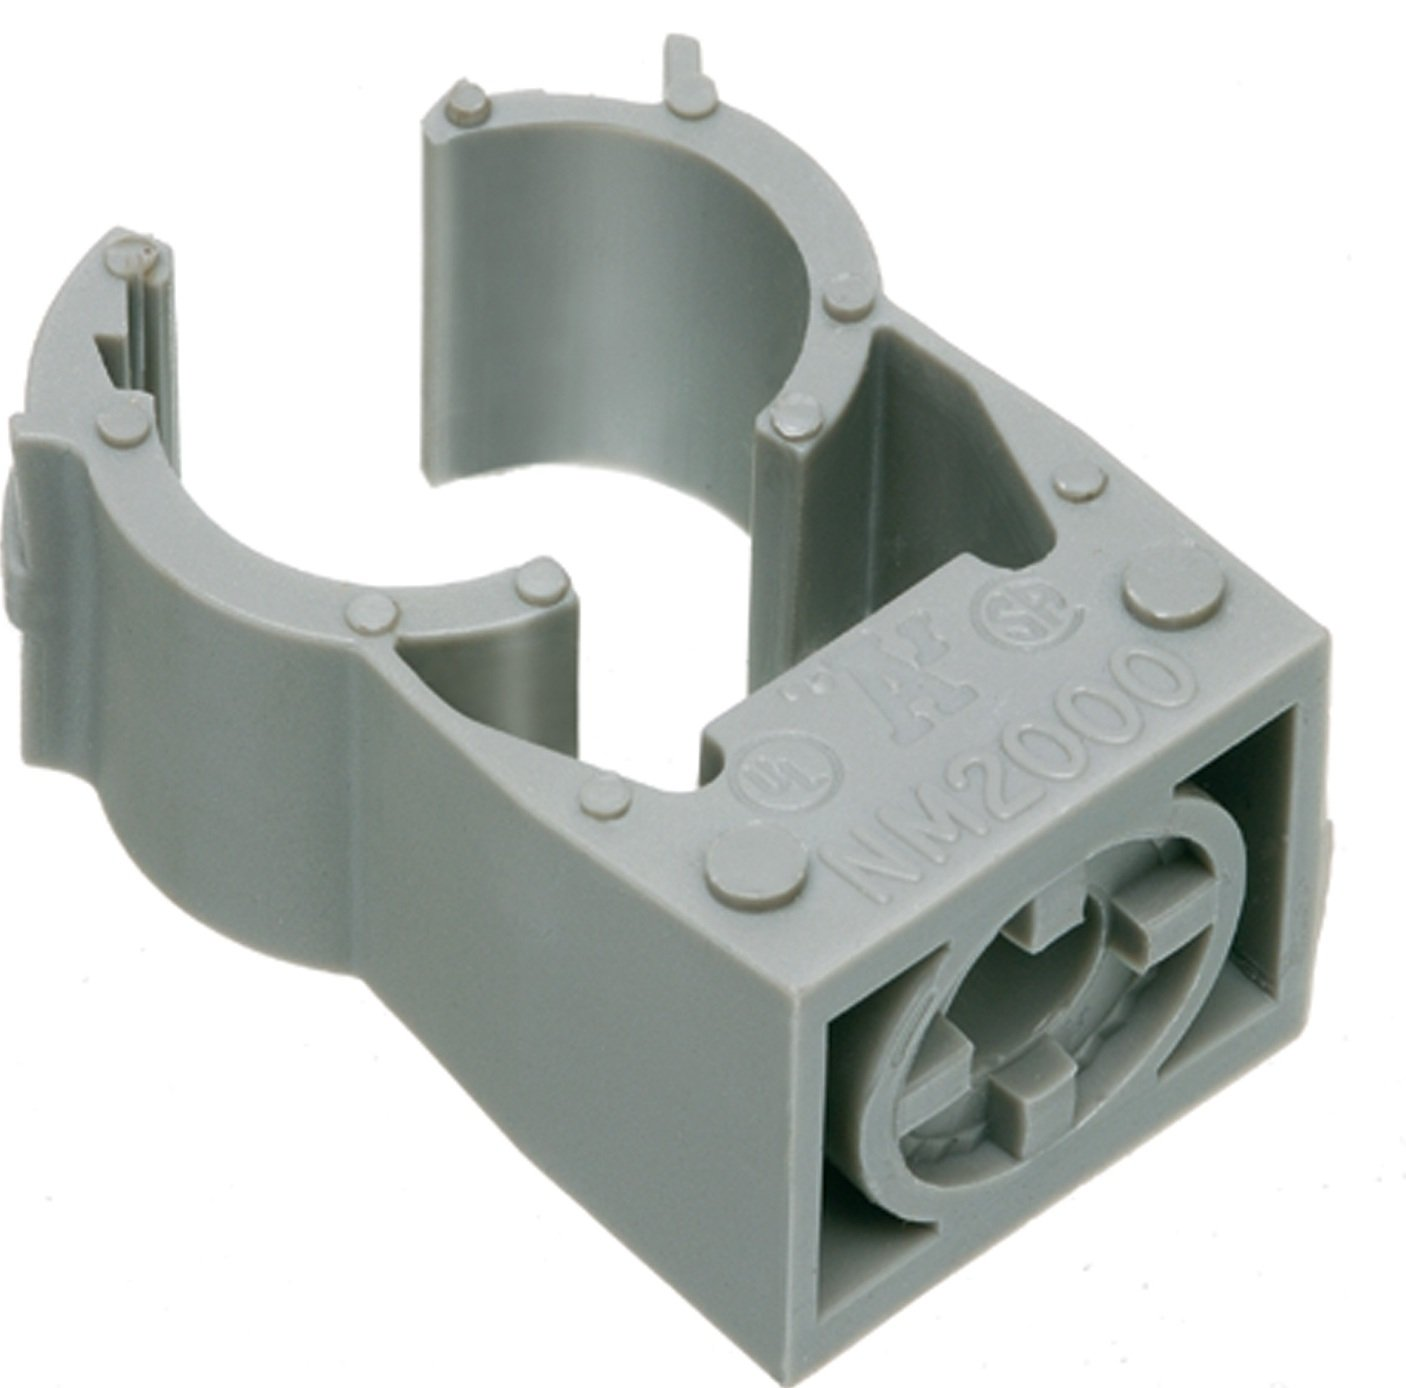 Arlington NM2040-100 Gray One-Piece Non-Metallic UV-Rated Quick-Latch Pipe Hanger, 100-Pack, 1-1/2-Inch EMT, 1-1/4-Inch RIGID